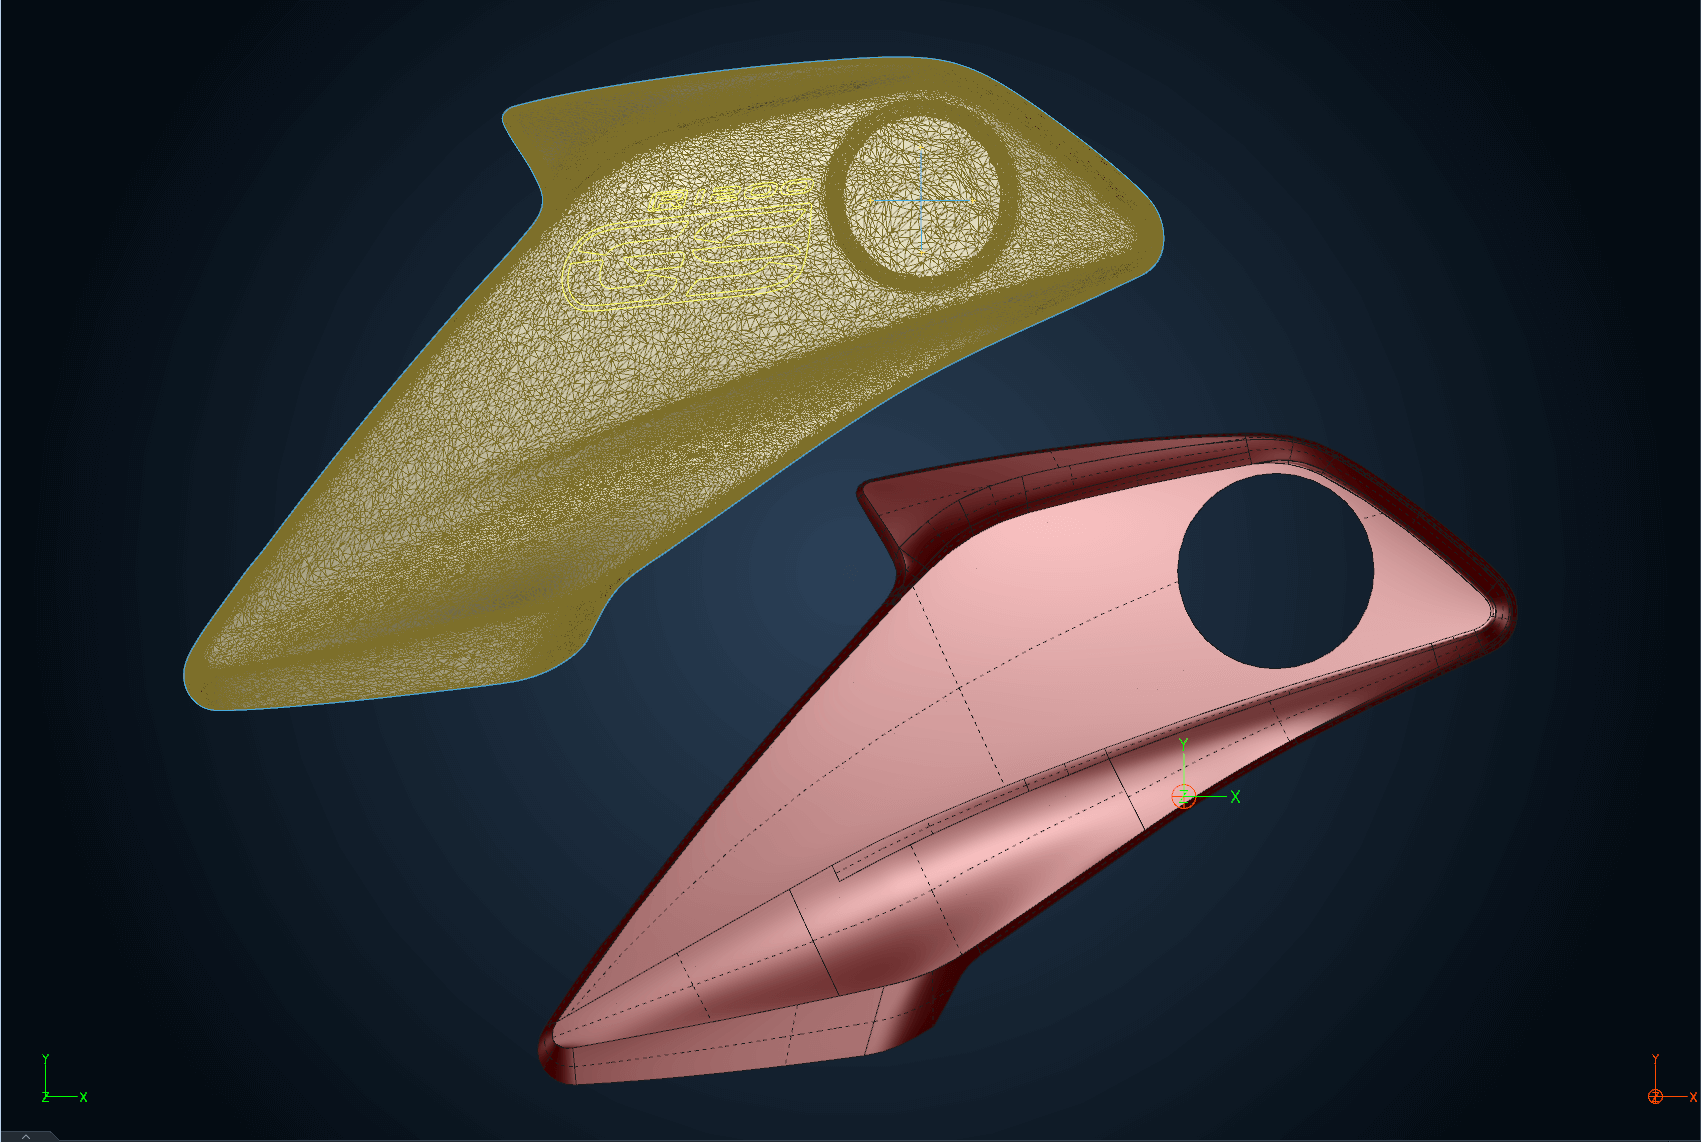 Digitized data and surface model for a motorcycle body part